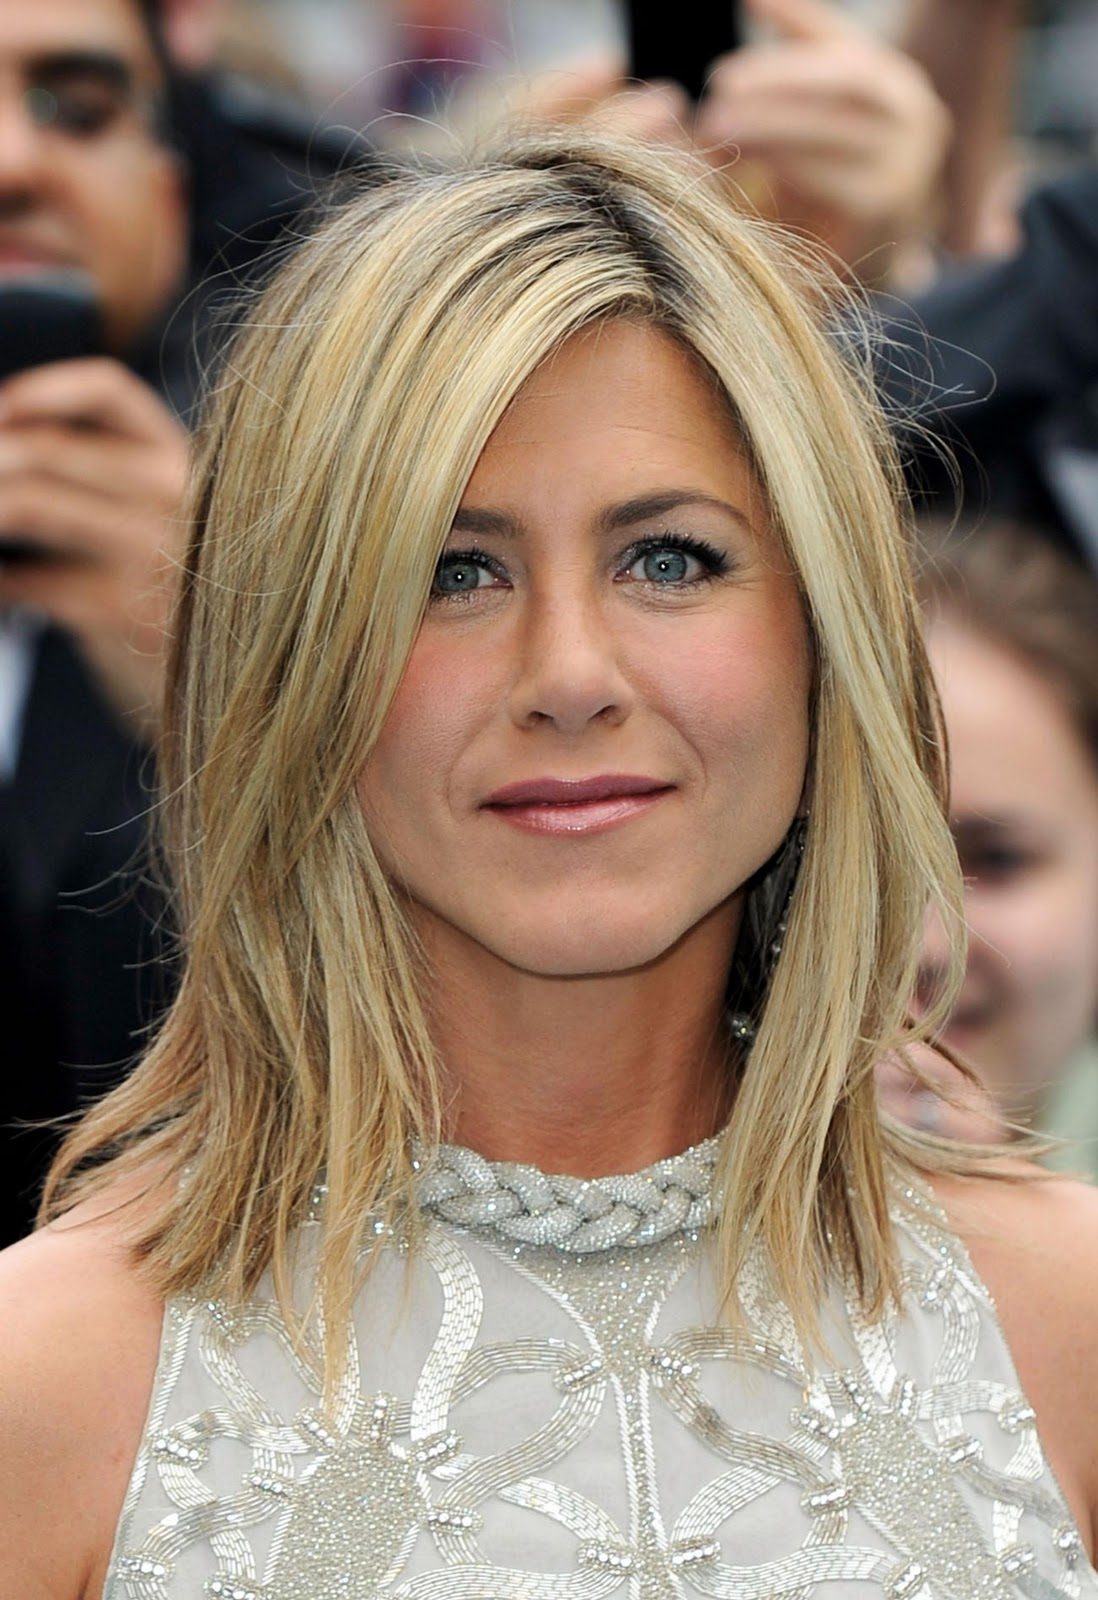 Jennifer Aniston Hotest Image Free Hd Wallpapers